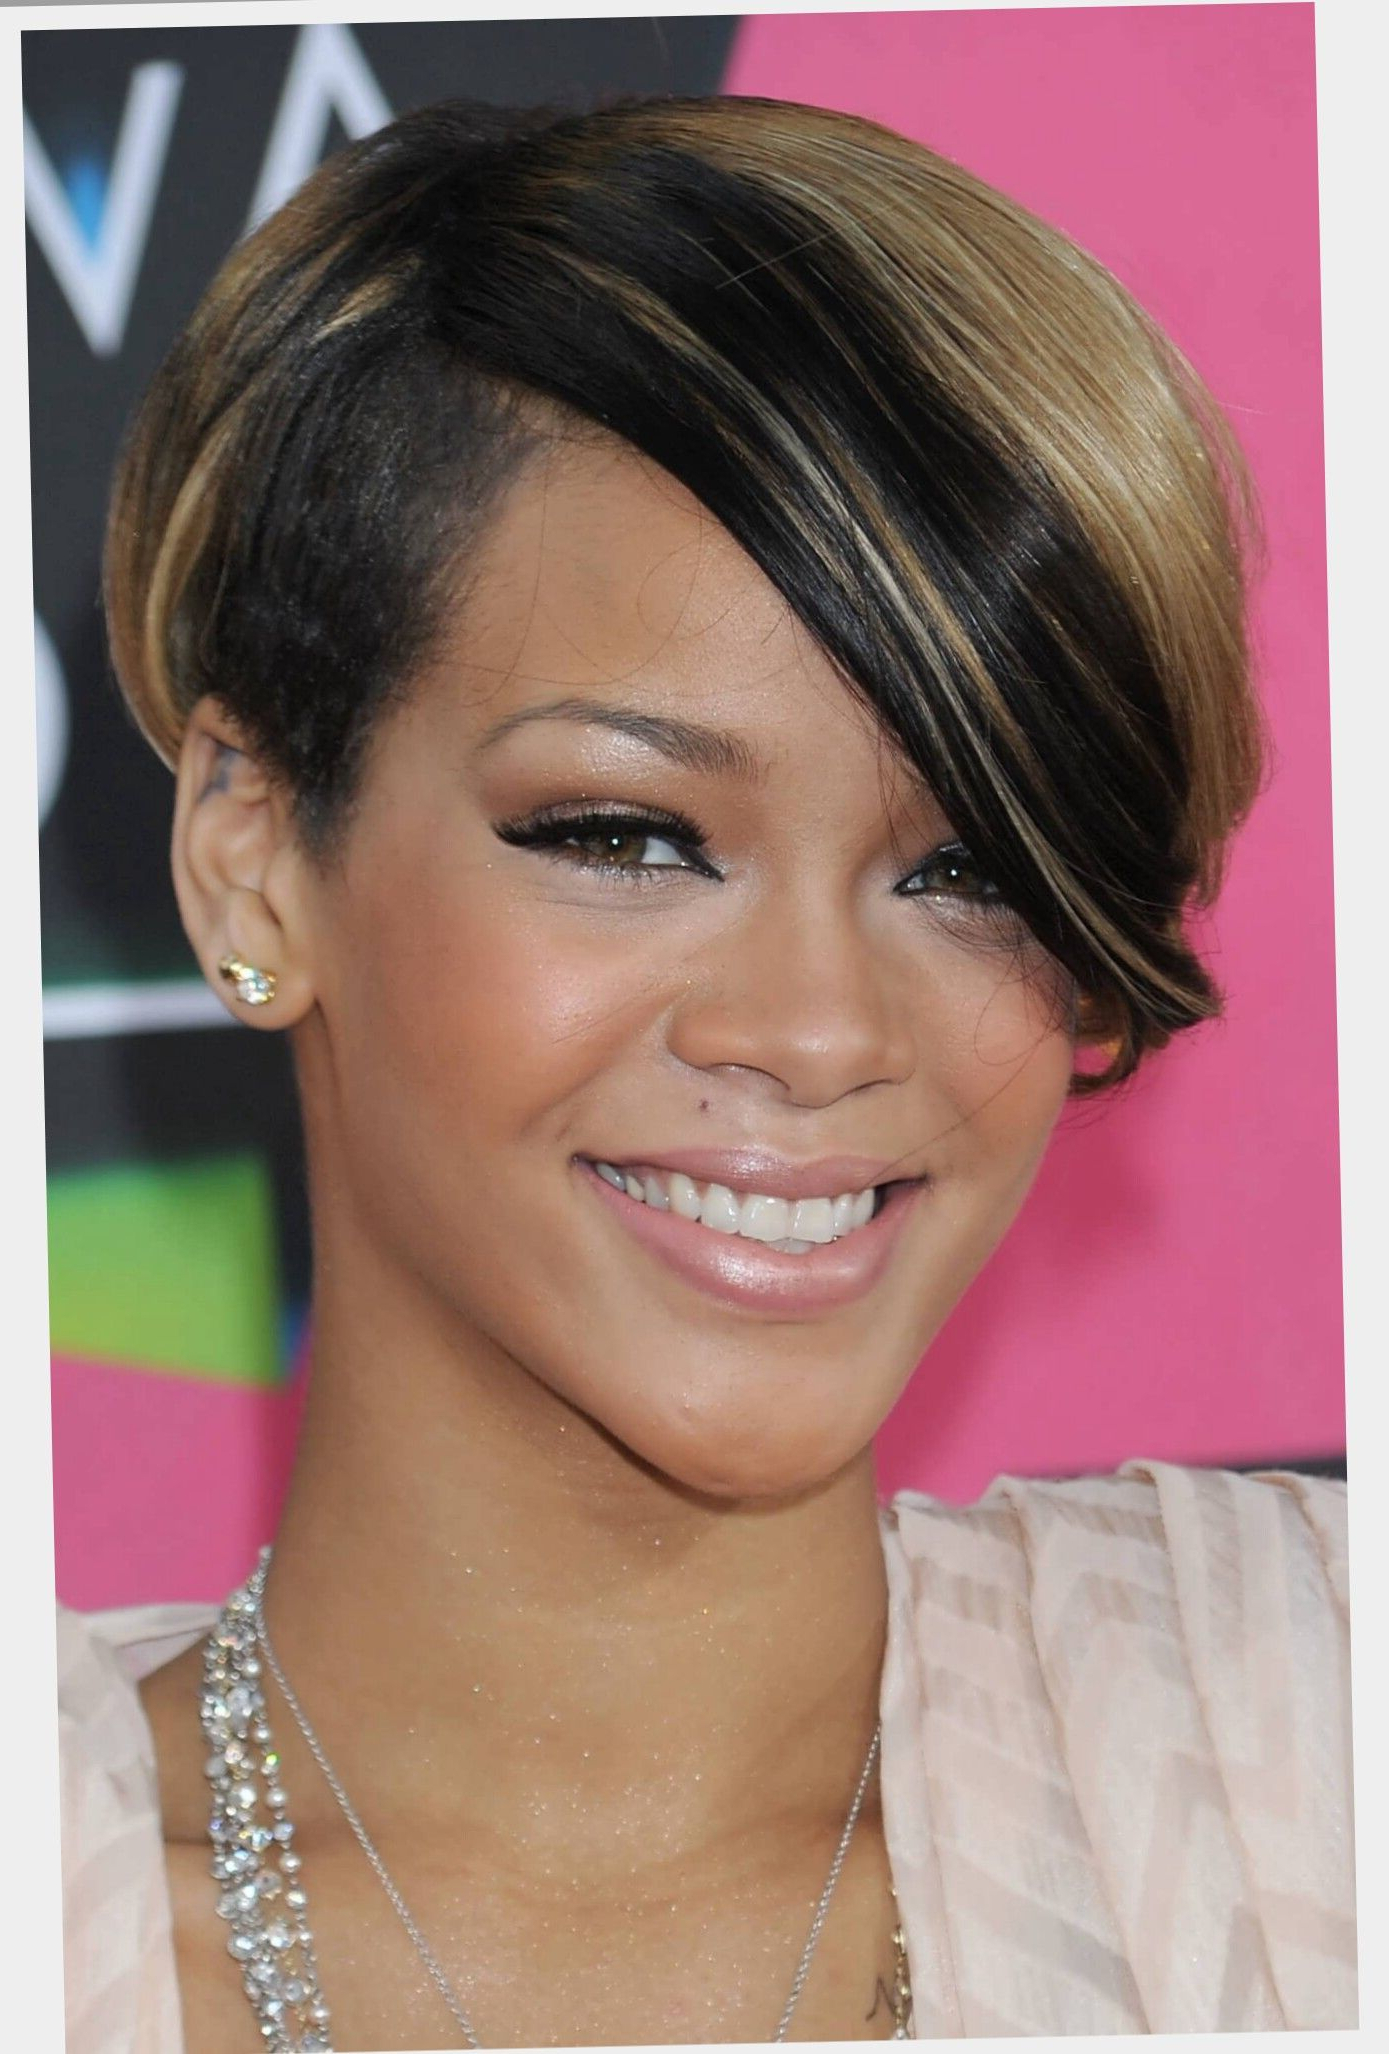 Pinnadine Crewe Morant On Short Hair Don't Care   Pinterest In African American Short Haircuts For Round Faces (View 4 of 25)